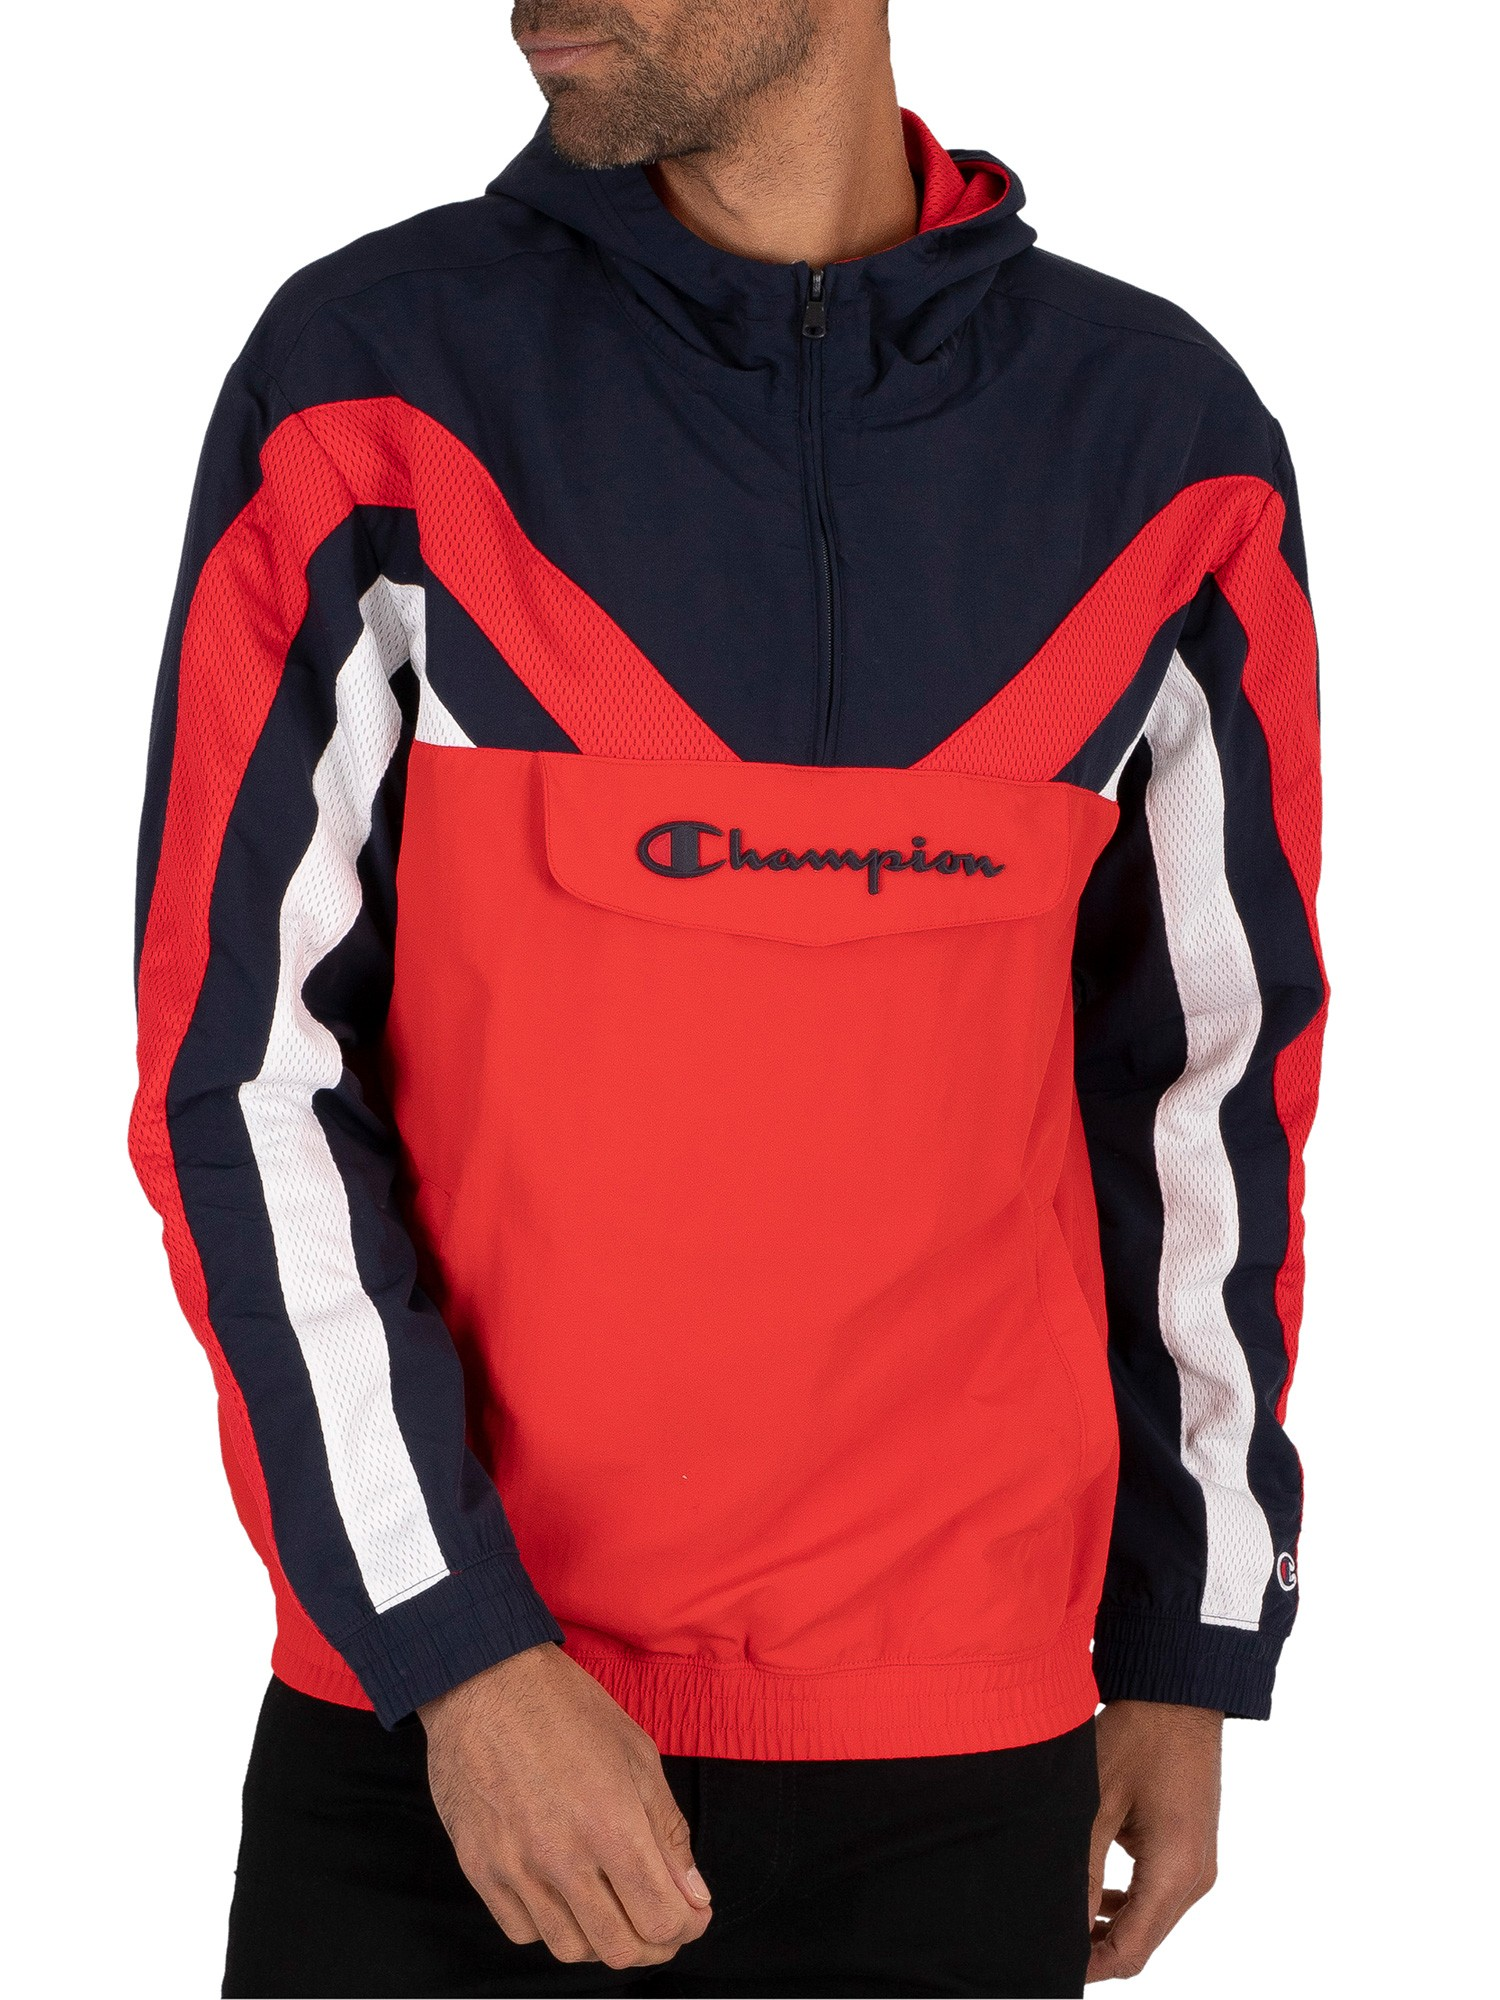 Champion Half Zip Sweatshirt - Navy/Red